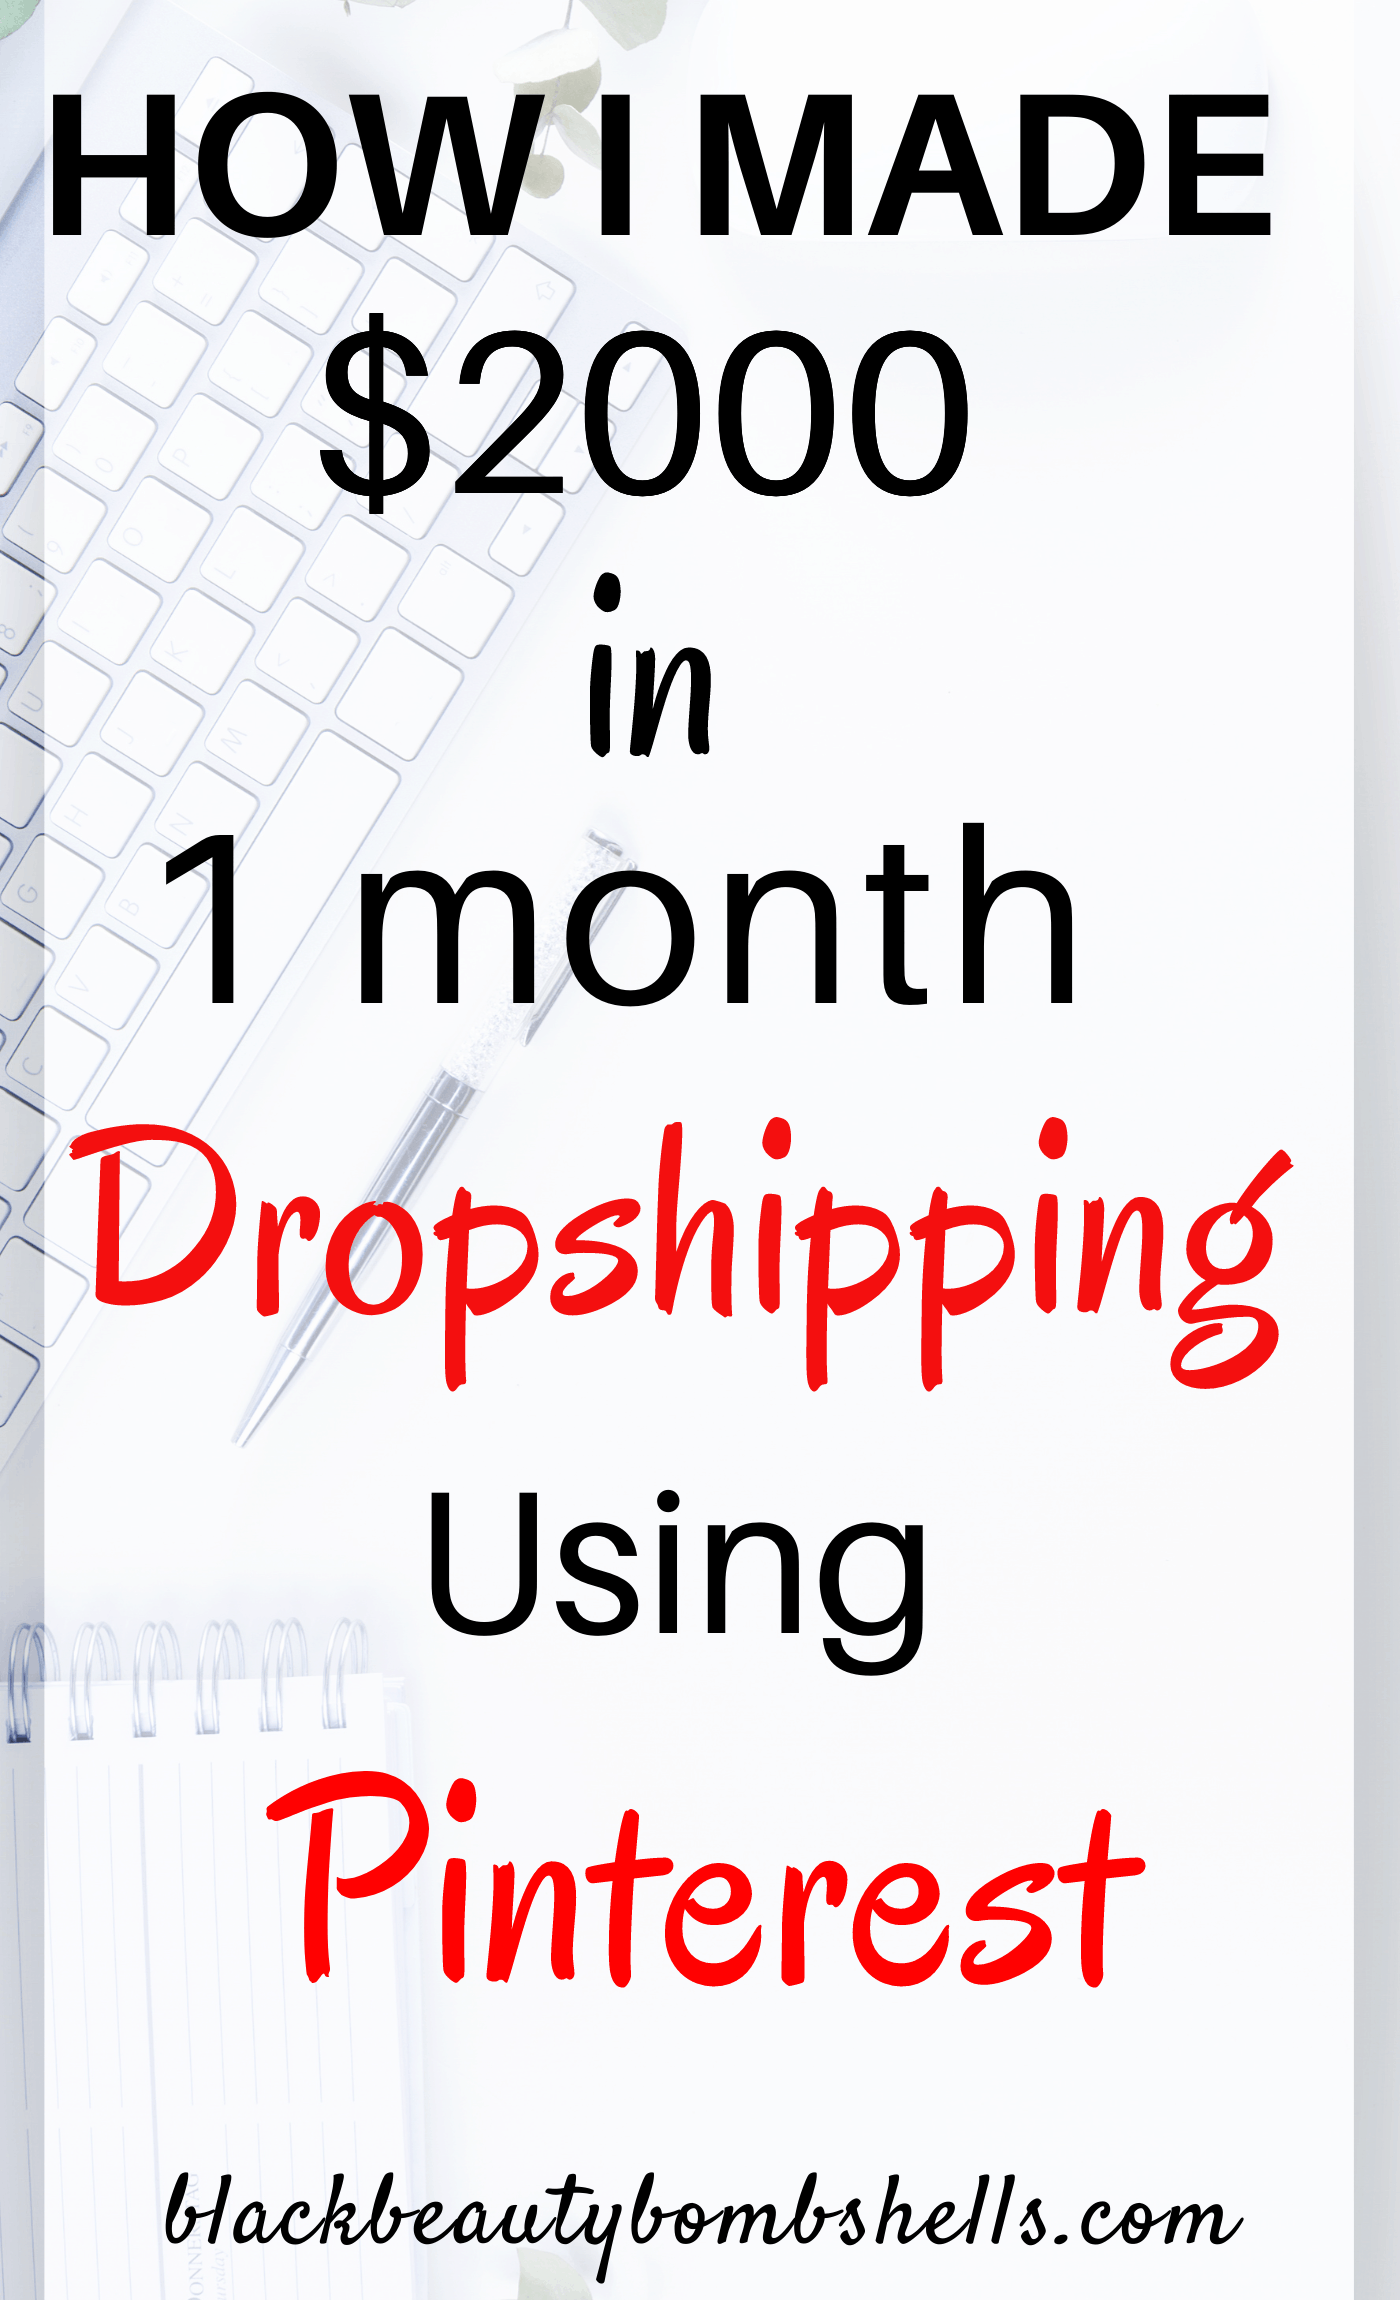 How I made $2000 in my First Month Dropshipping Using Pinterest